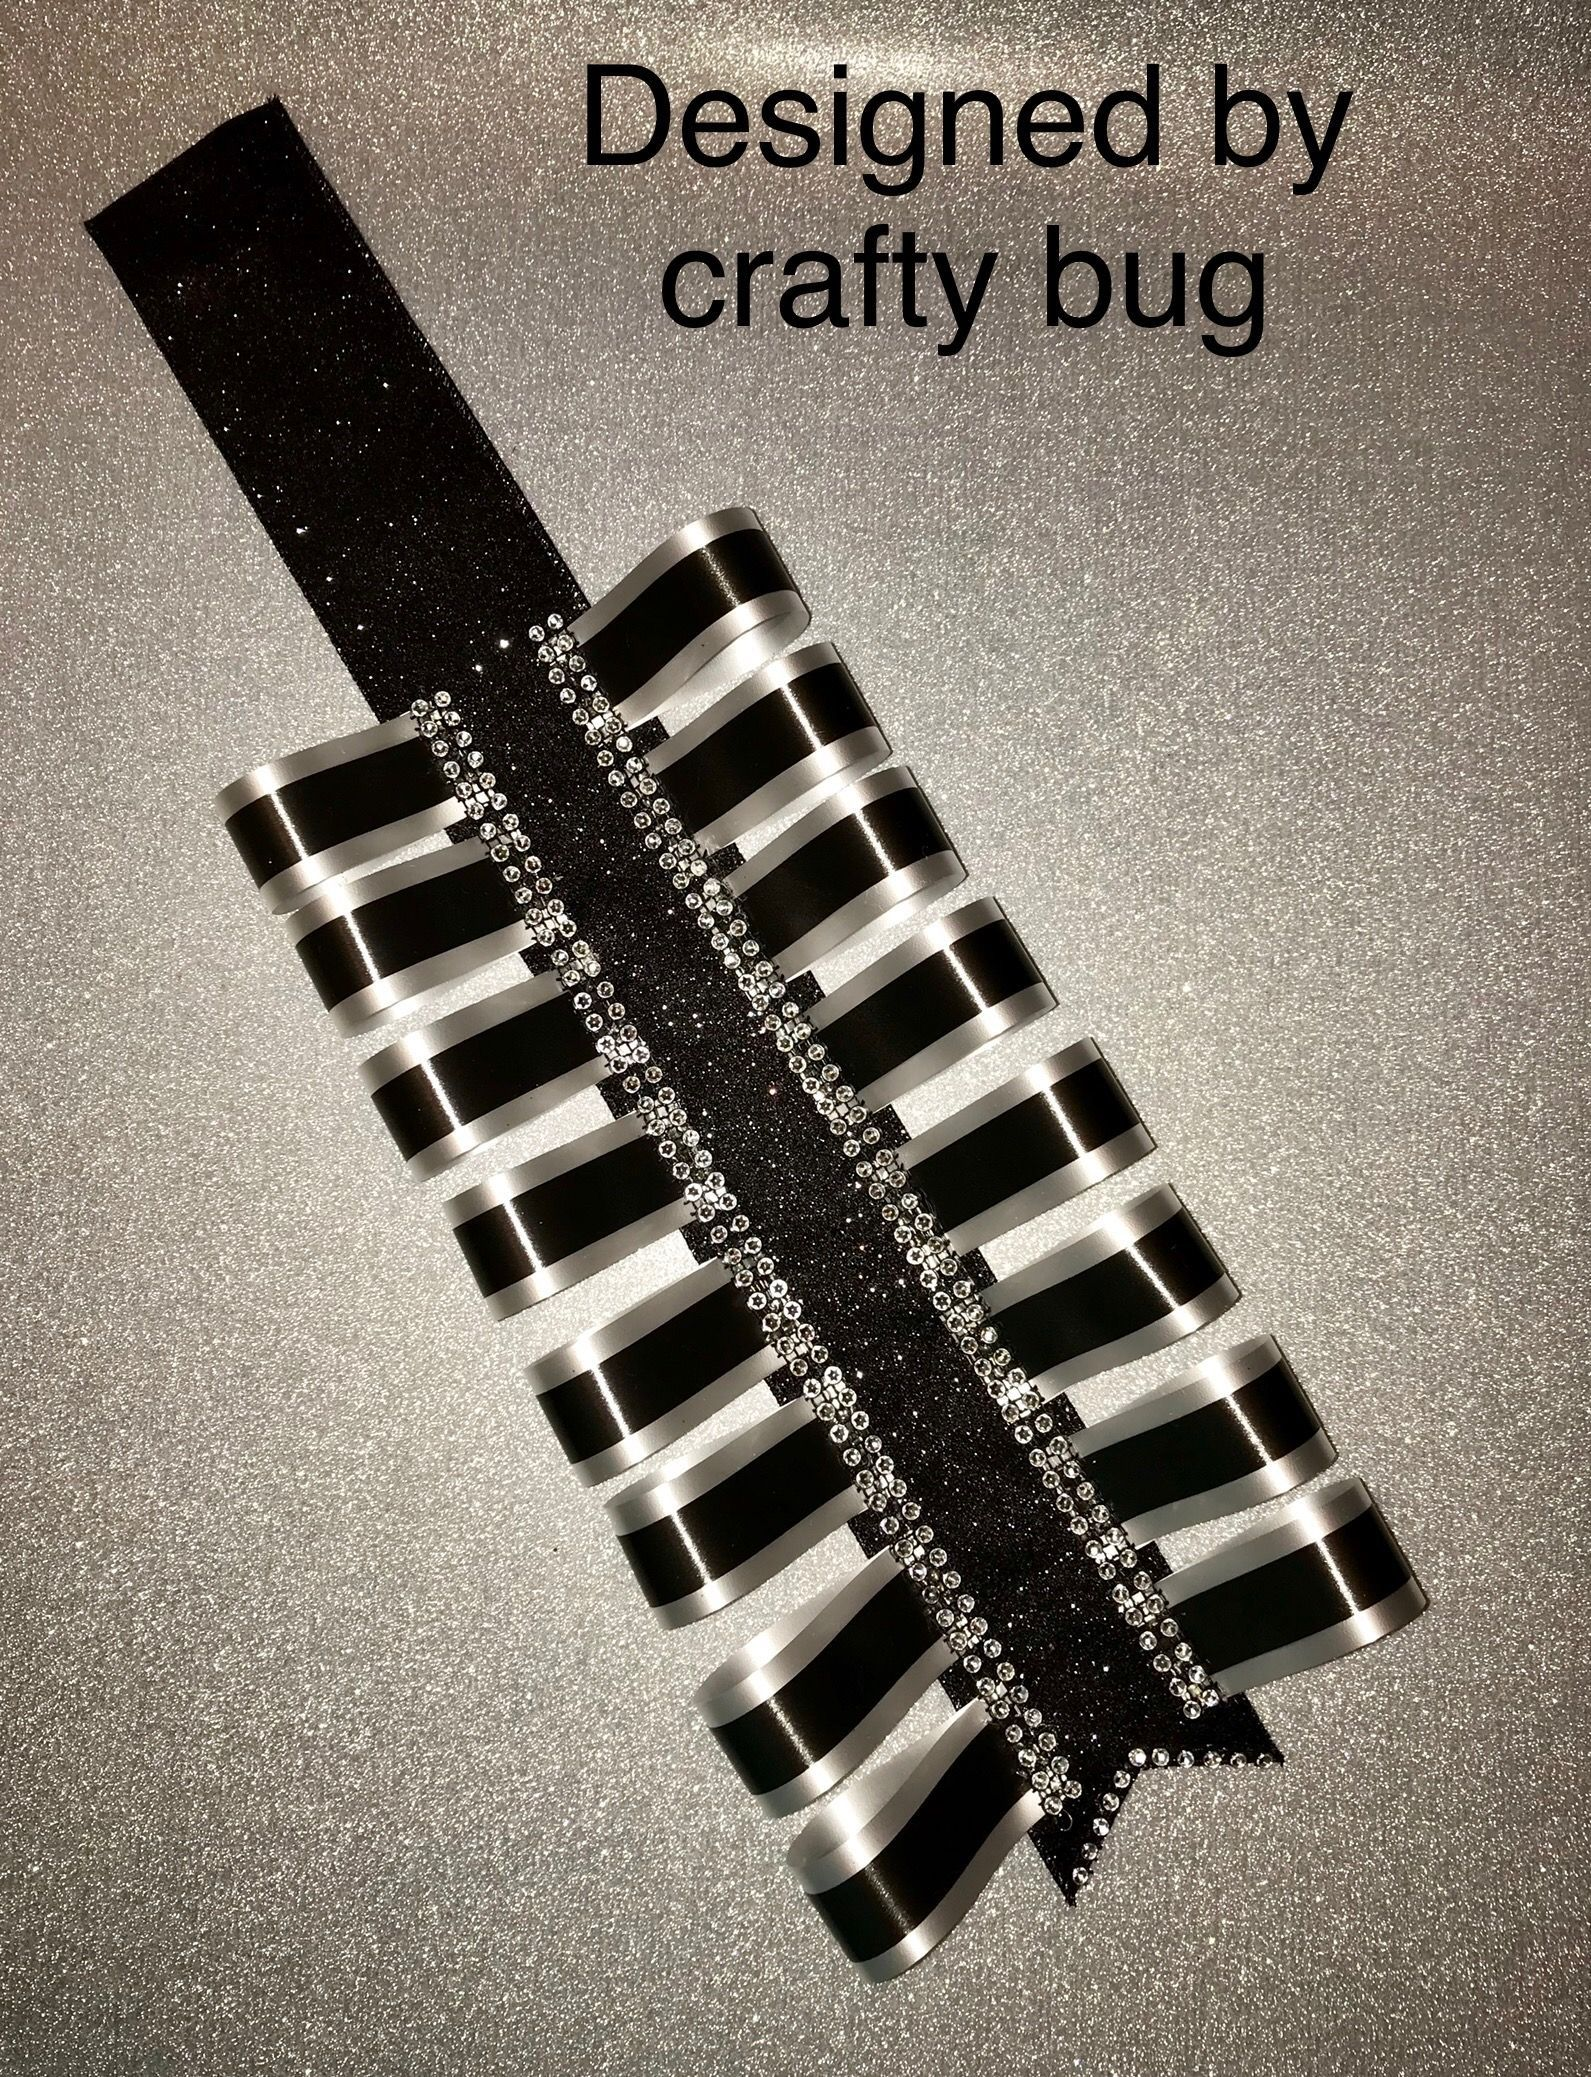 Black and white homecoming mum double loopy braid for homecoming mum. Designed by crafty bug #homecomingmumsdiy Black and white homecoming mum double loopy braid for homecoming mum. Designed by crafty bug #homecomingmumsdiy